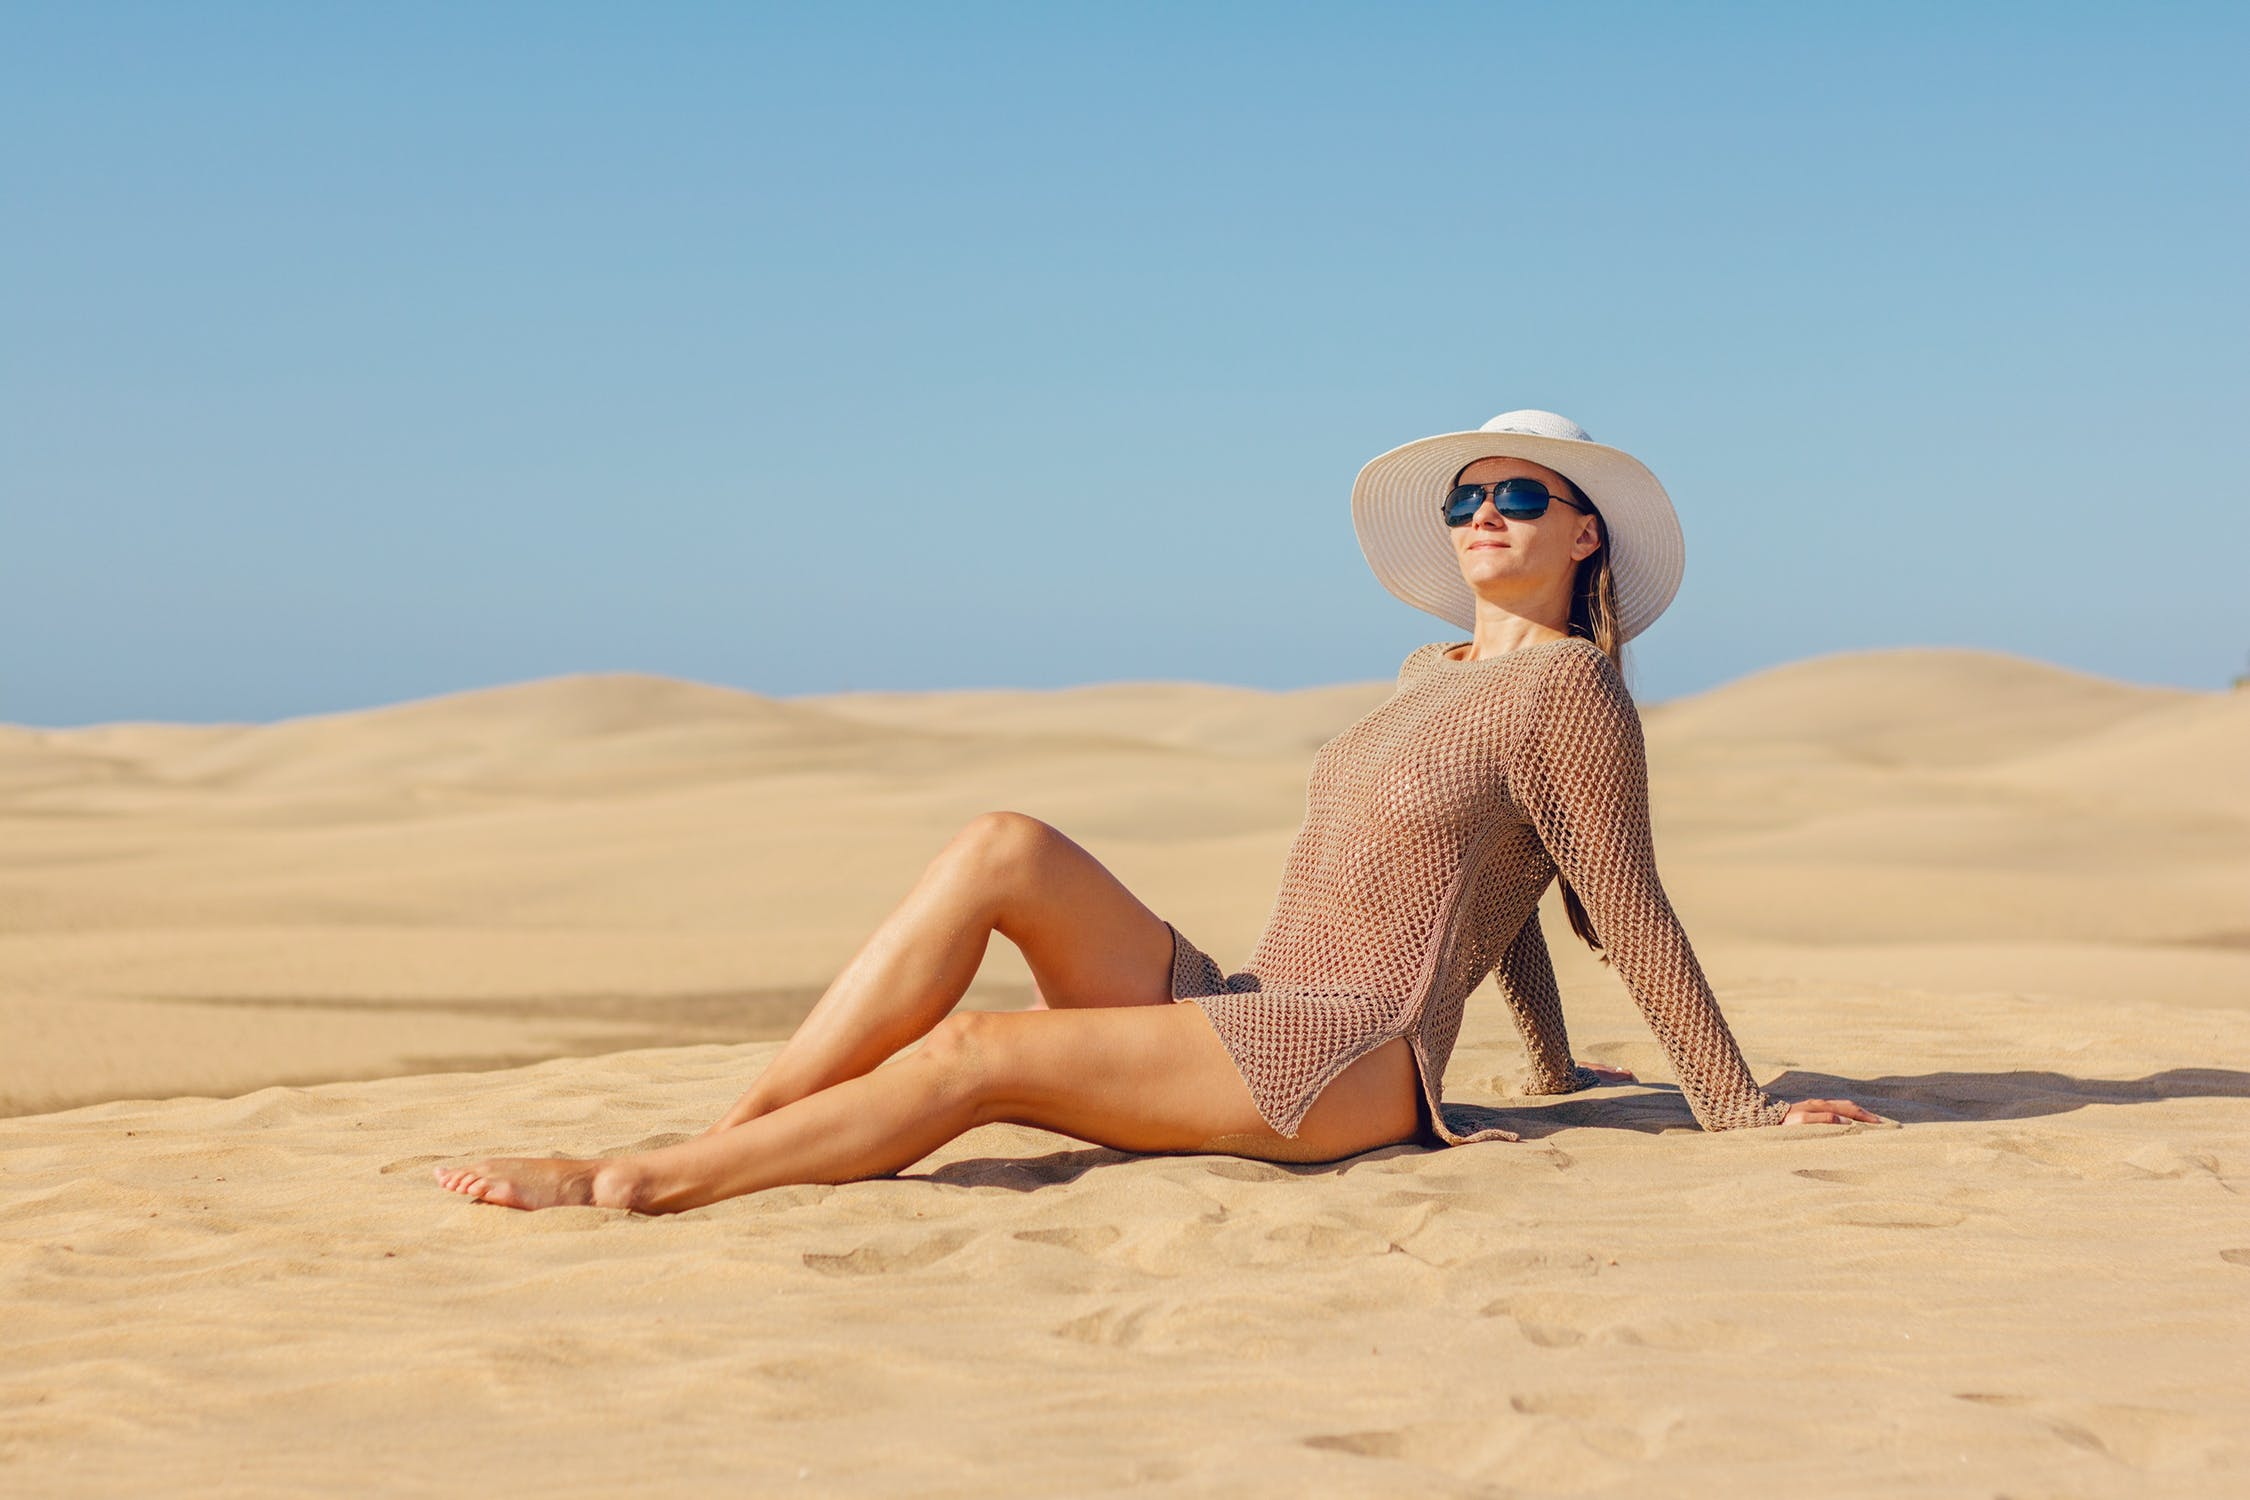 You will find amazing nudism beach in Portugal